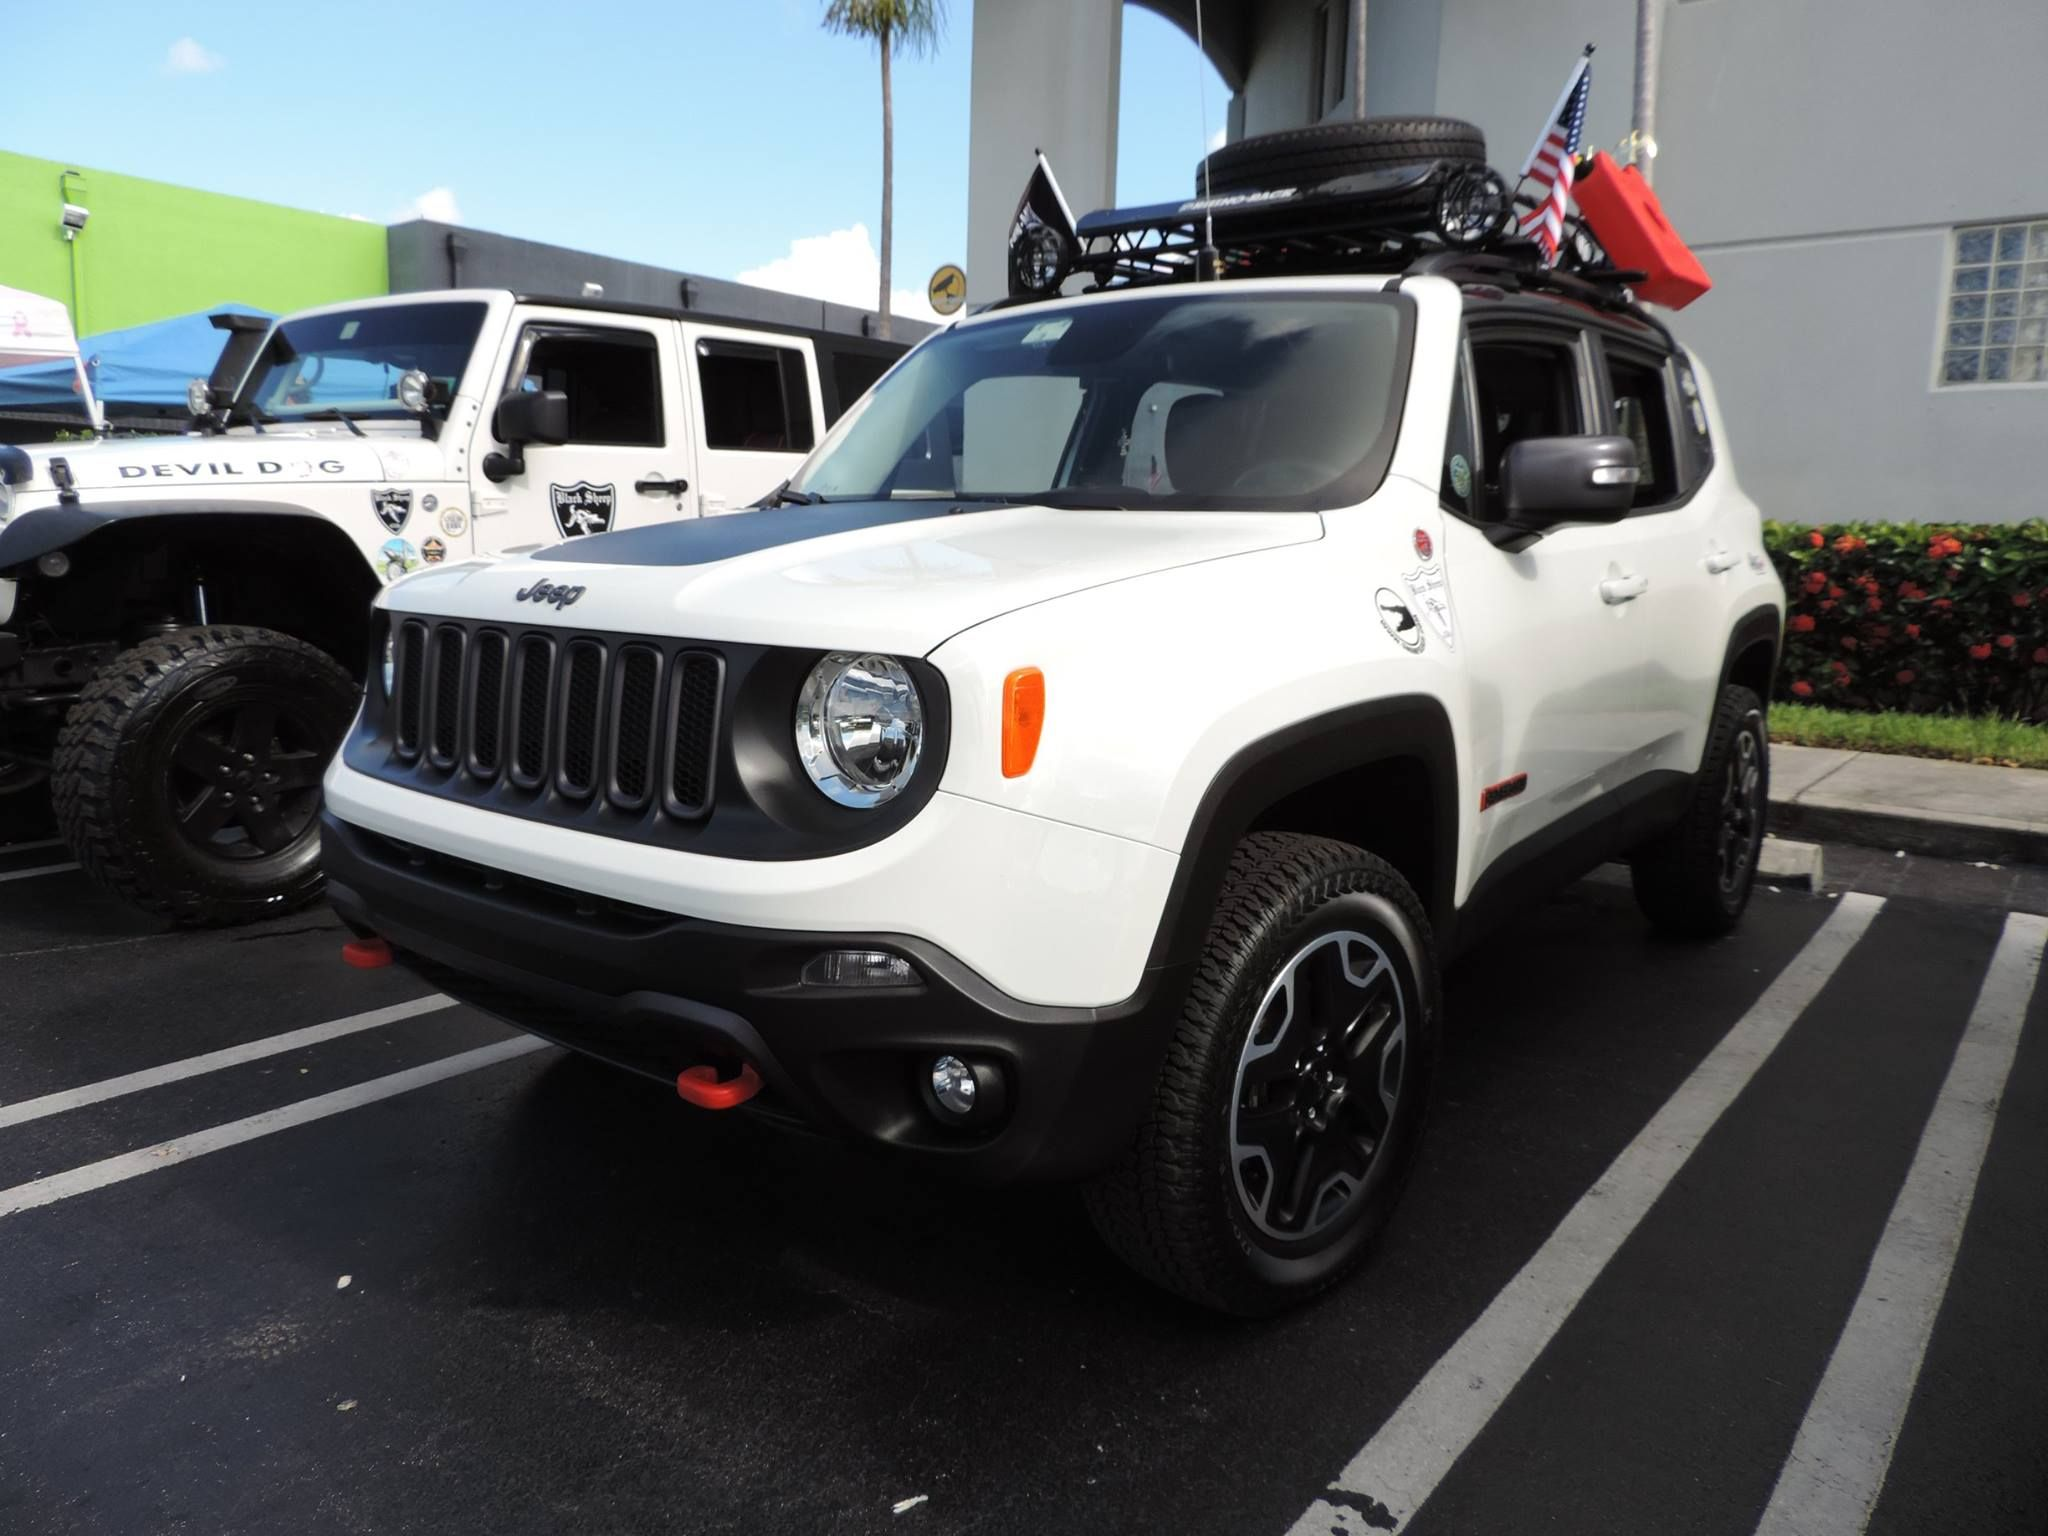 E O Jeep Renegade Vai Crescendo Jeep Renegade Jeep 4x4